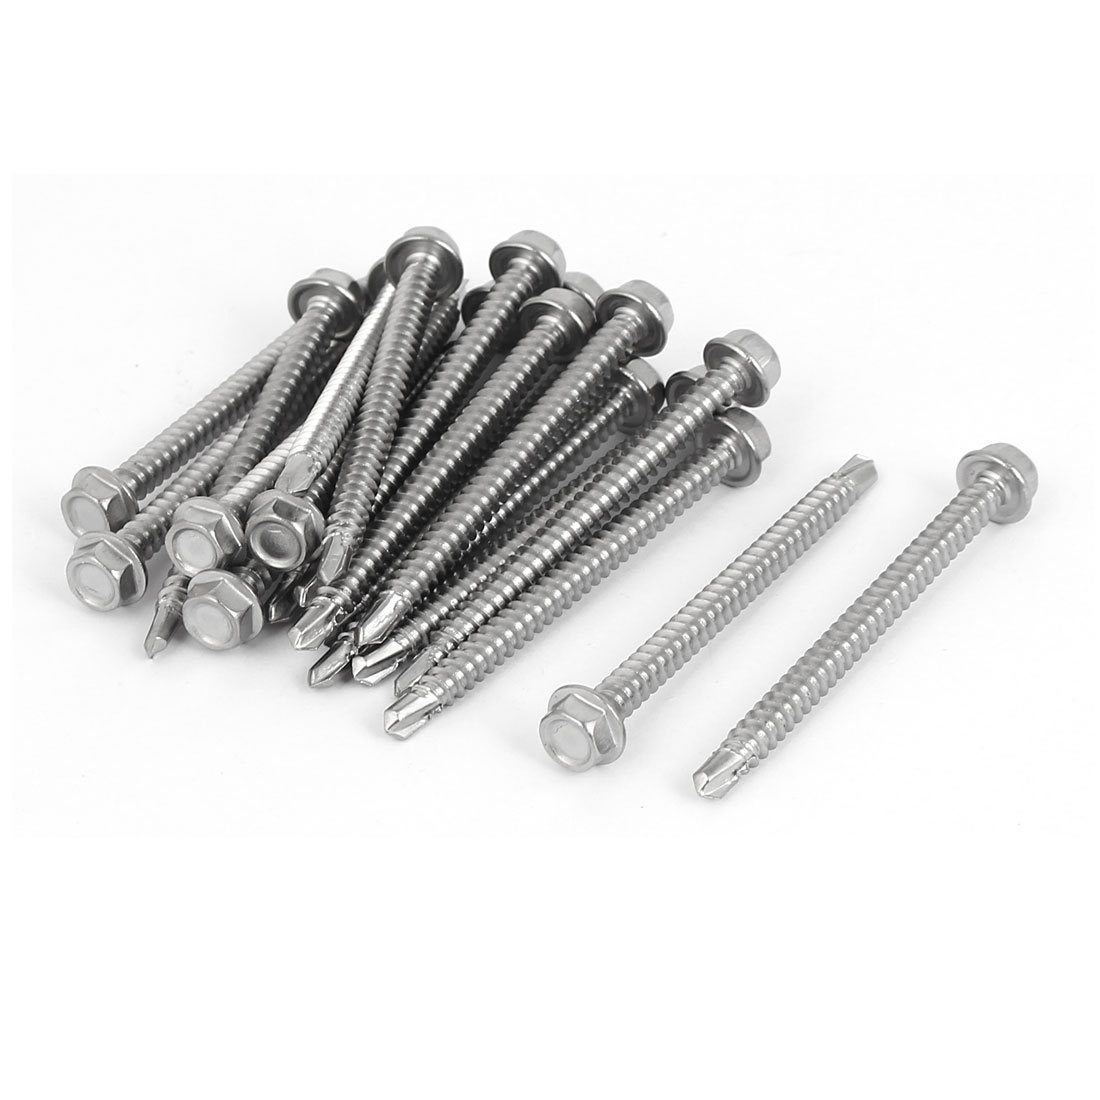 M4.2x50mm Thread 410 Stainless Steel Hex Washer Head Self Drilling Screws 20 Pcs